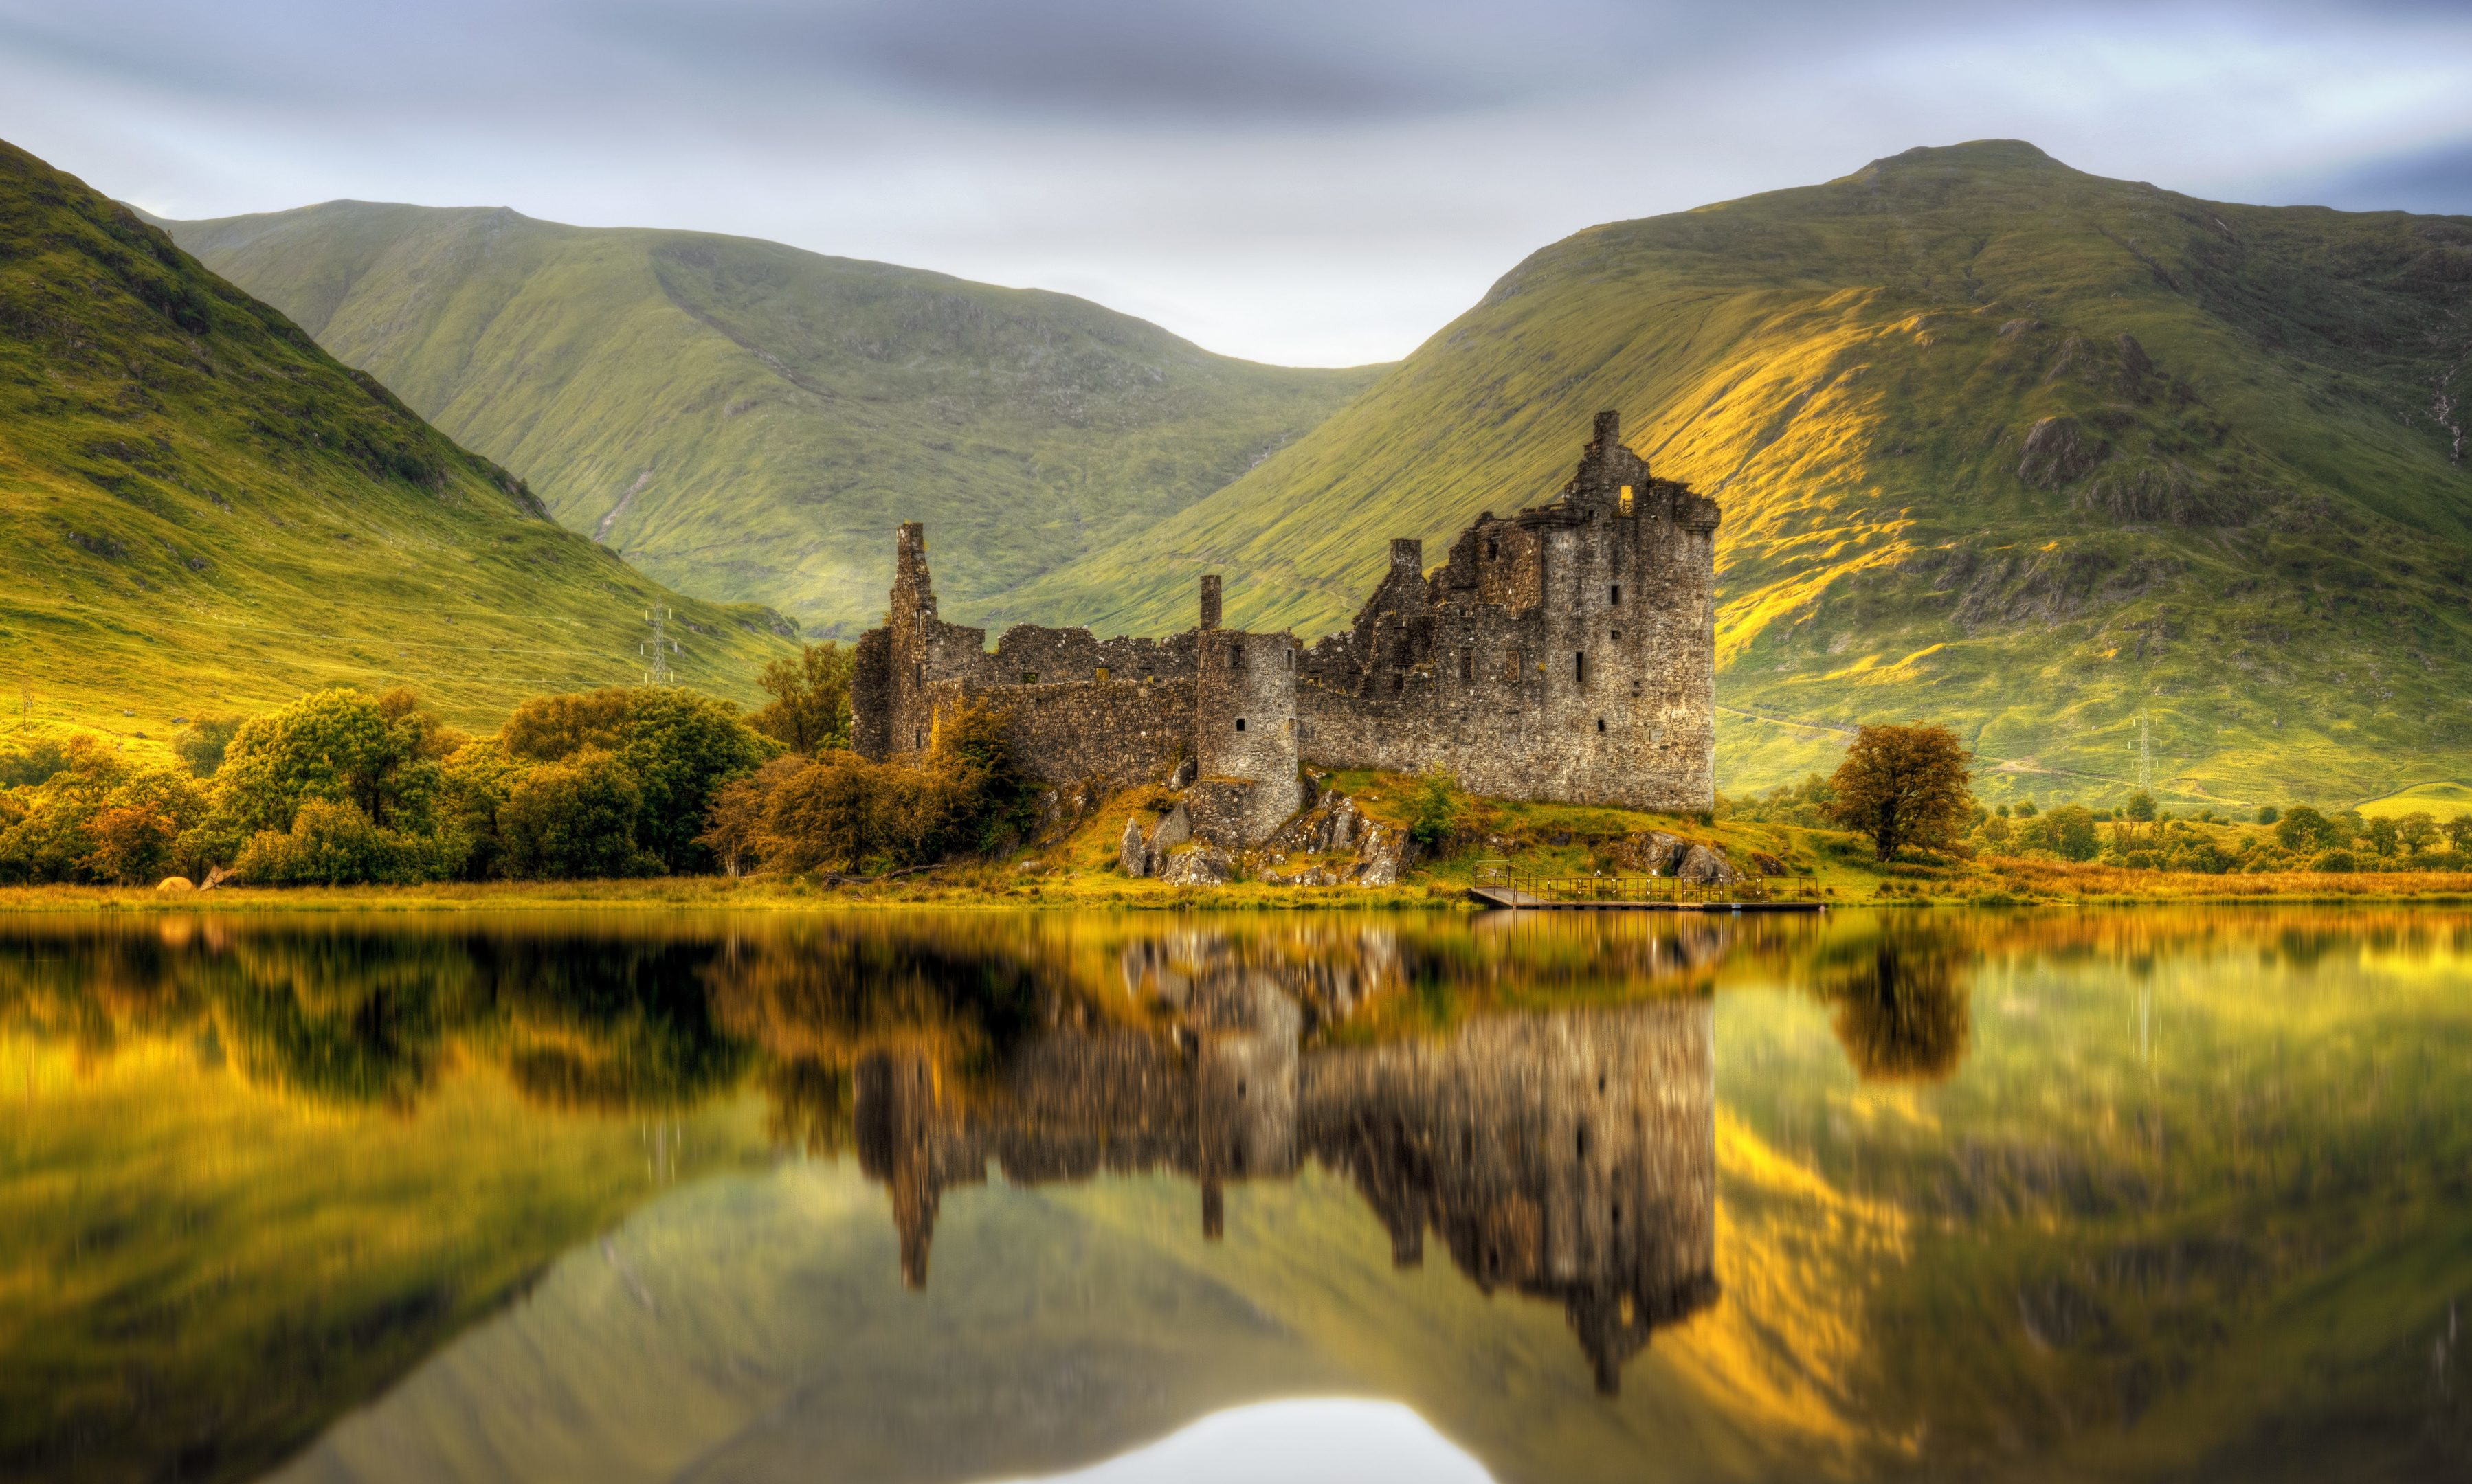 Loch Awe was the scene of the biggest ever earthquake in Scotland